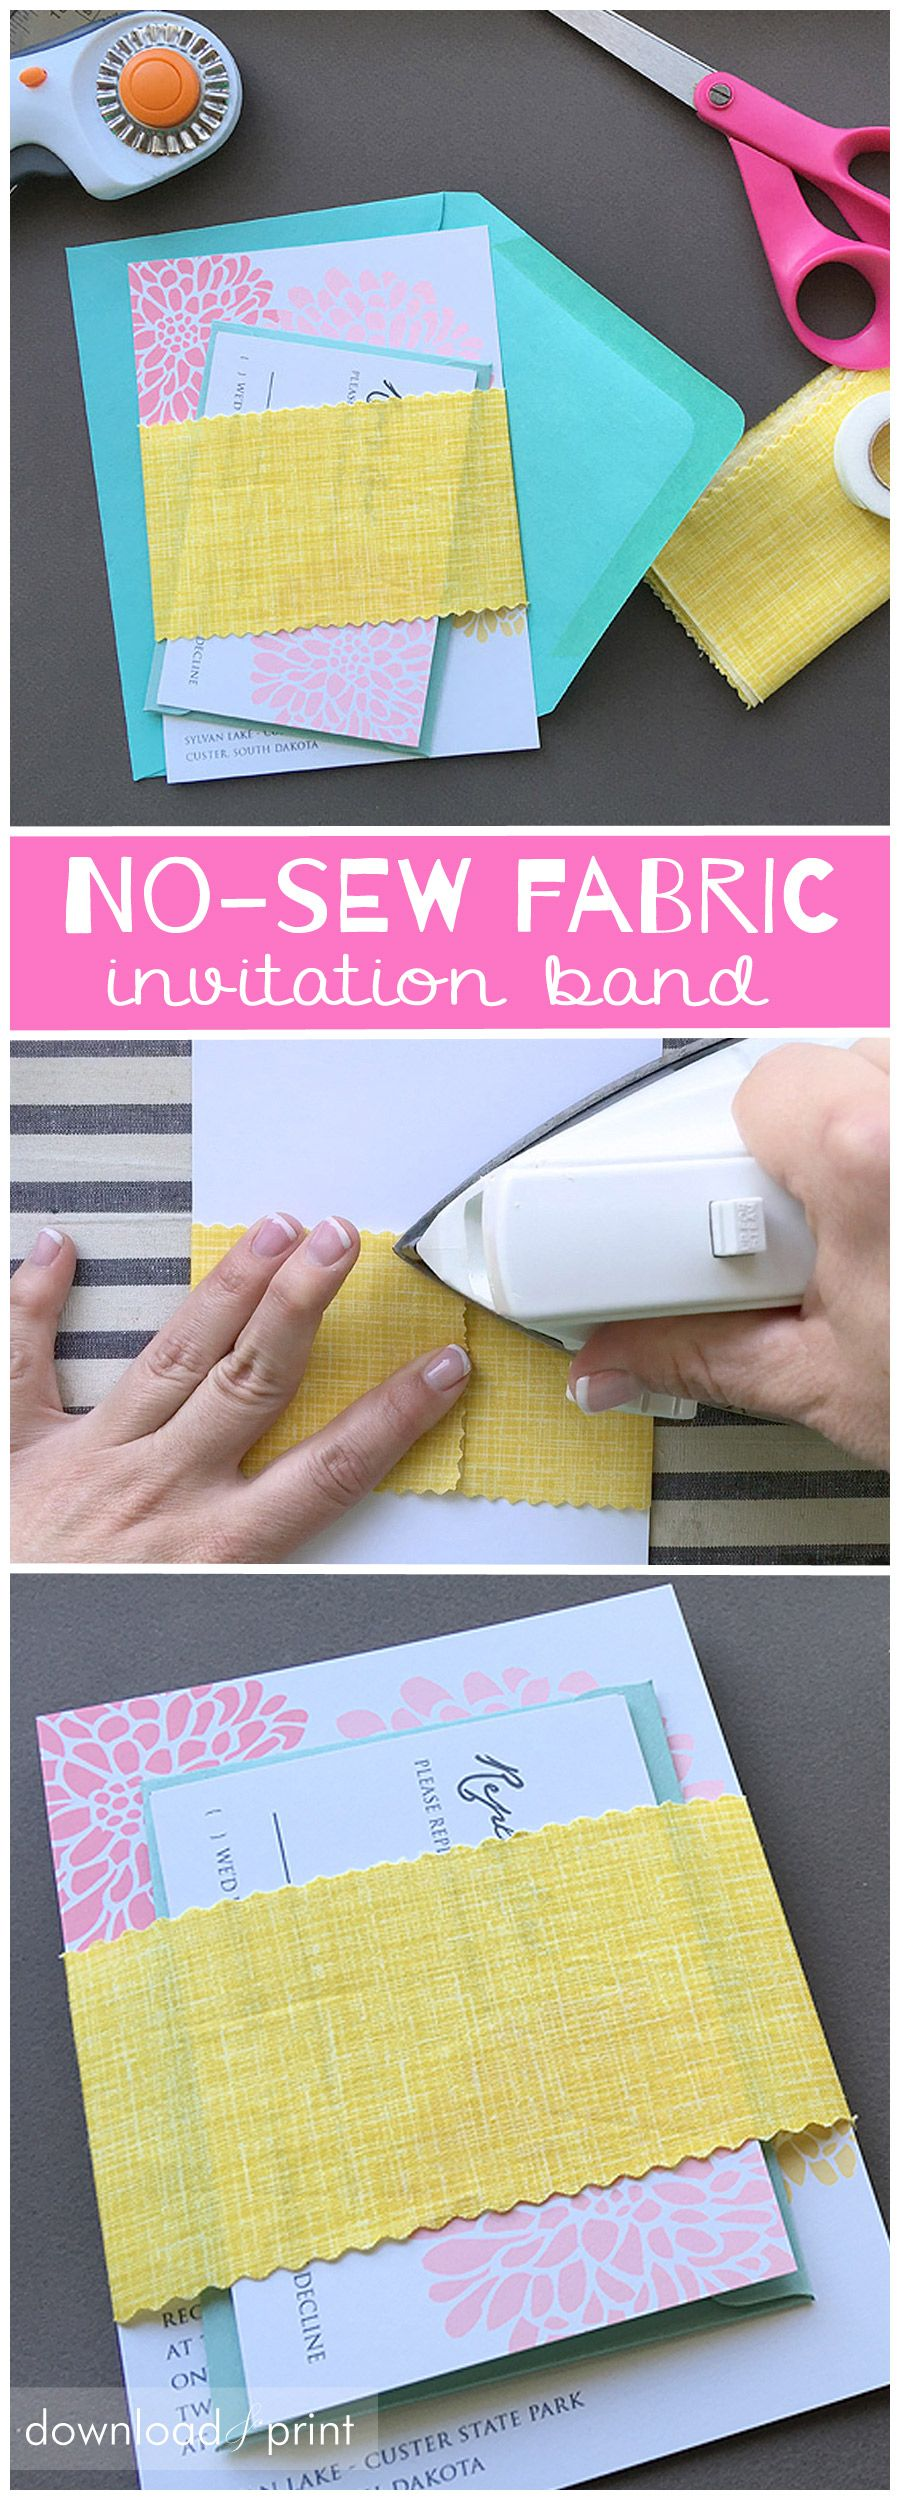 Fancy Up Your Invitations with a NoSew Fabric Band